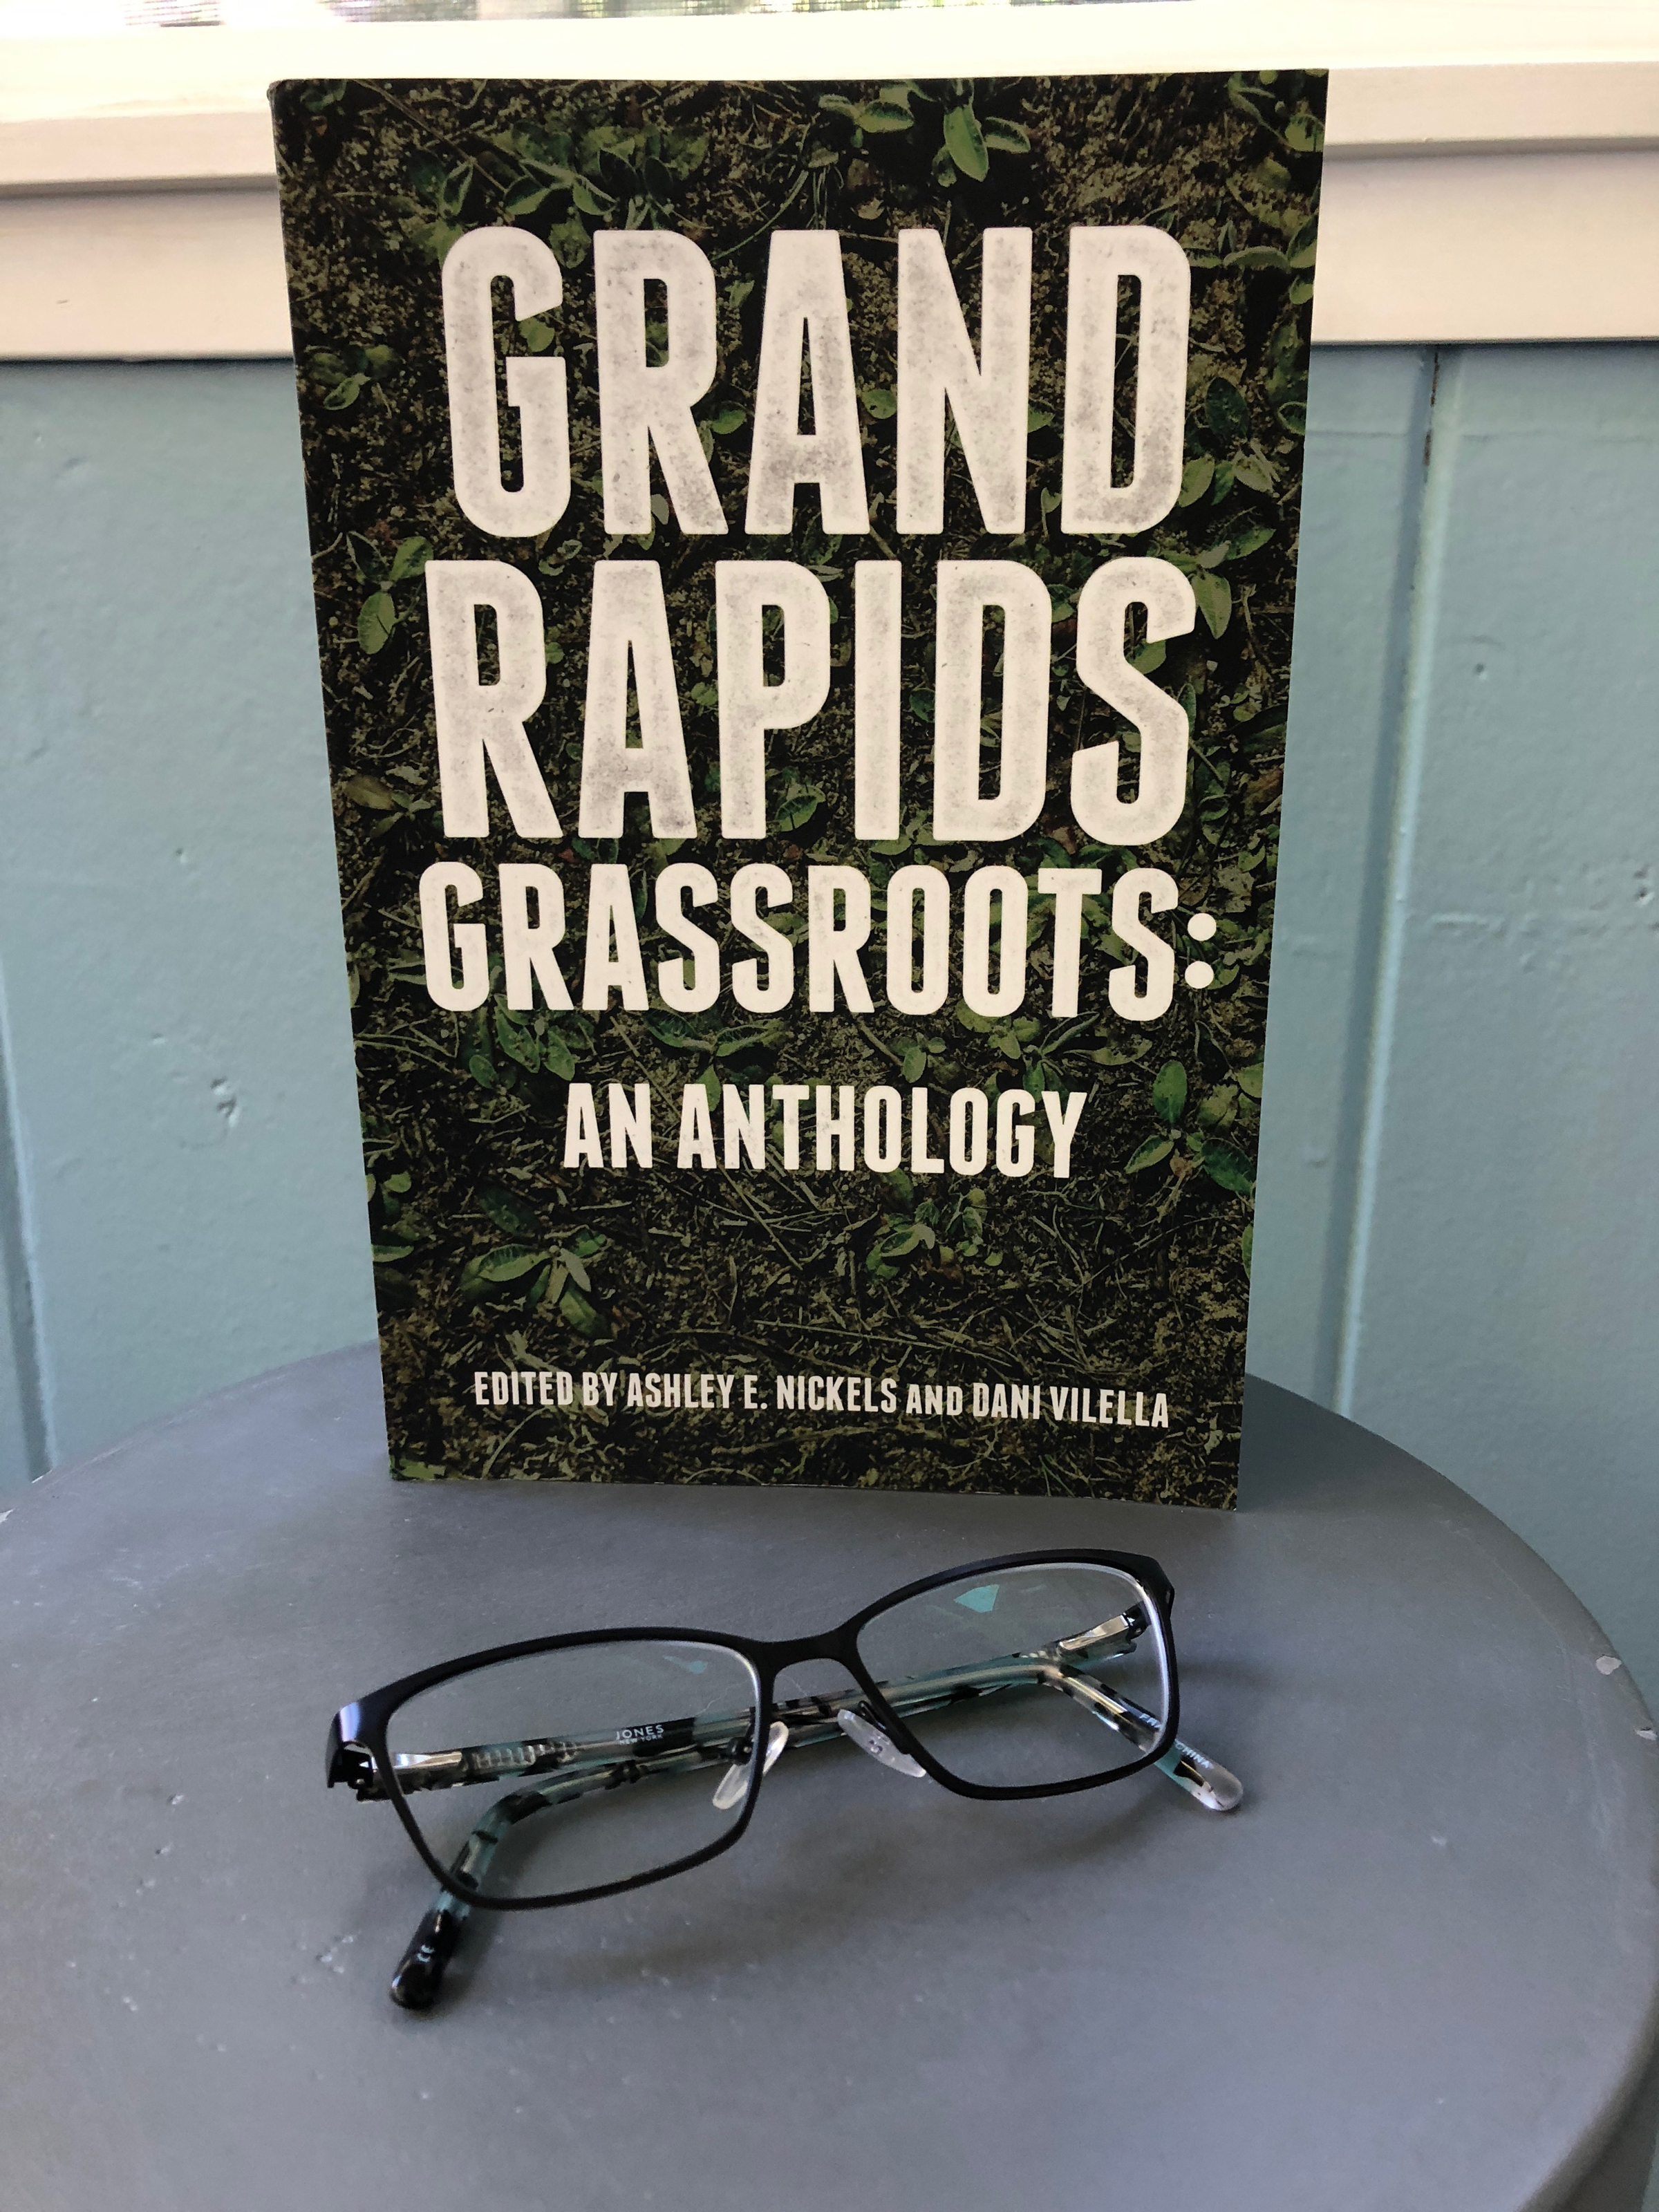 Grand Rapids Grassroots: An Anthology tells the story of grassroots activism in a rust belt city.